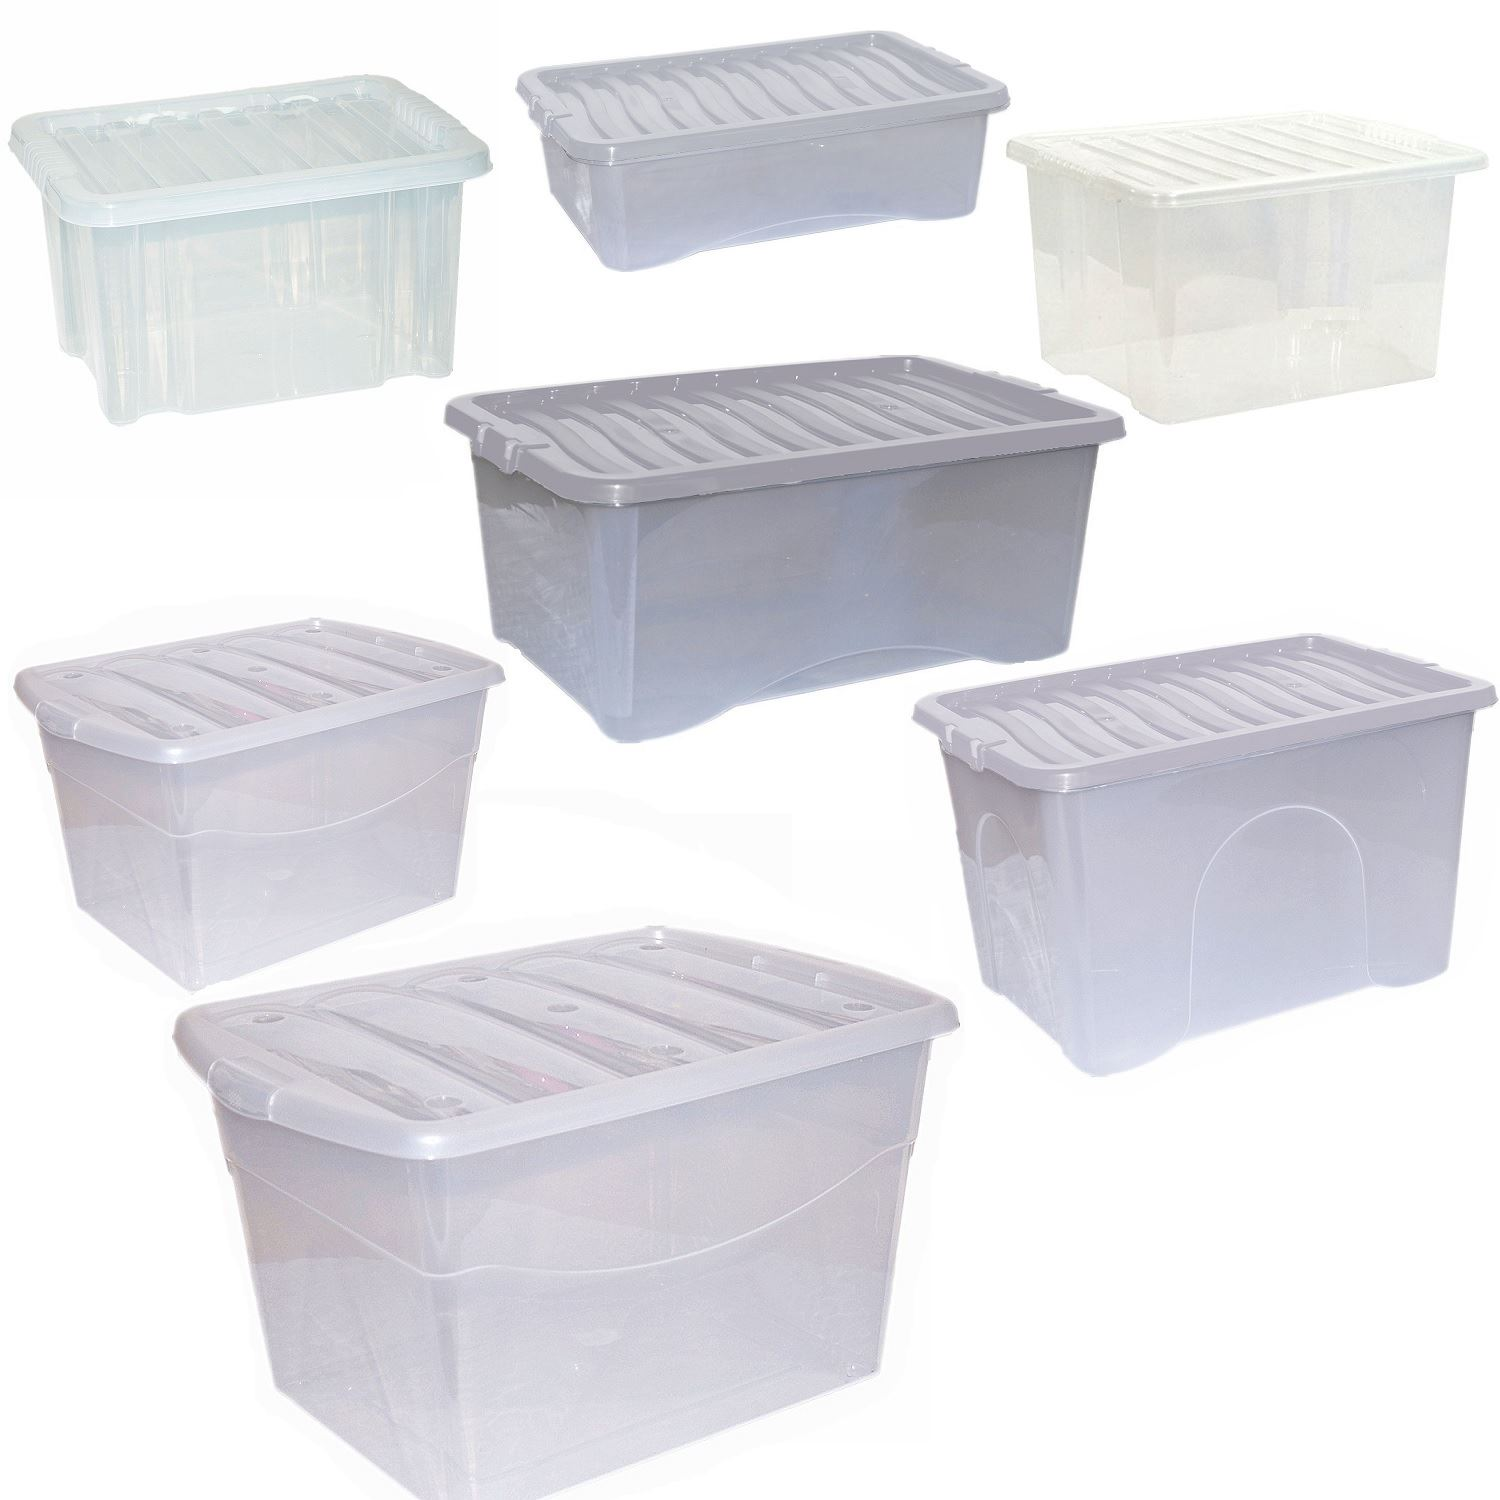 CrazyGadget Large Plastic Storage Clear Box with Clear Lid